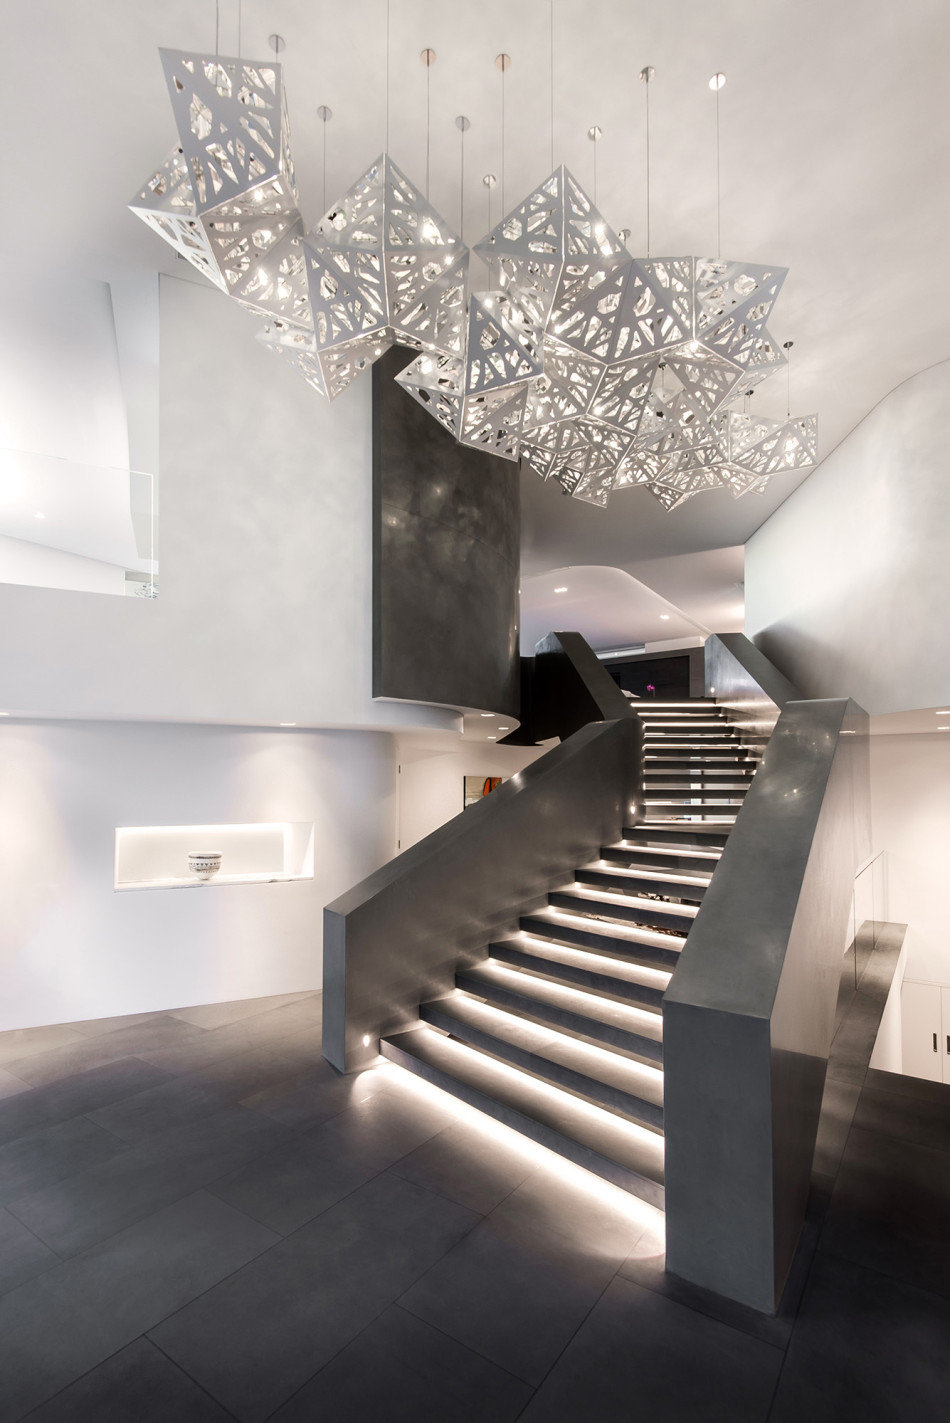 Summer Residence with a Dramatic Multi-Level Form (6)